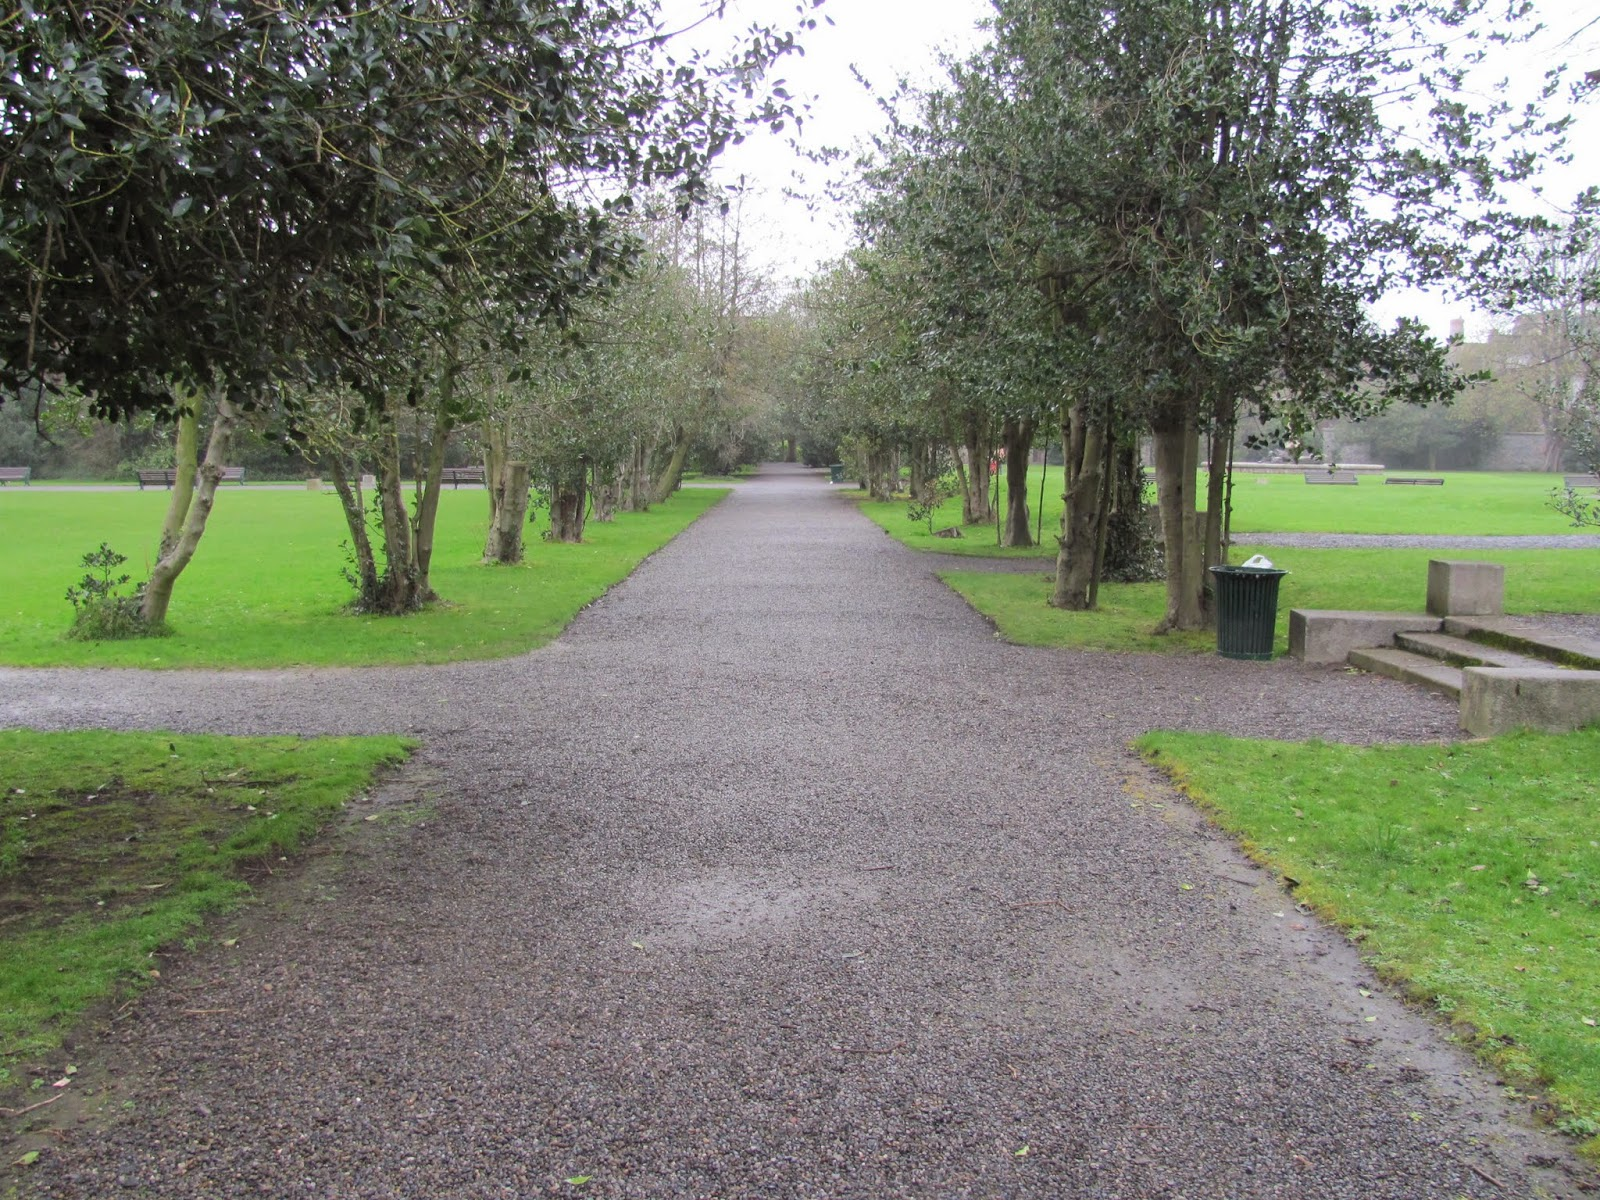 Gravel Paths at Iveagh Gardens Dublin, Ireland